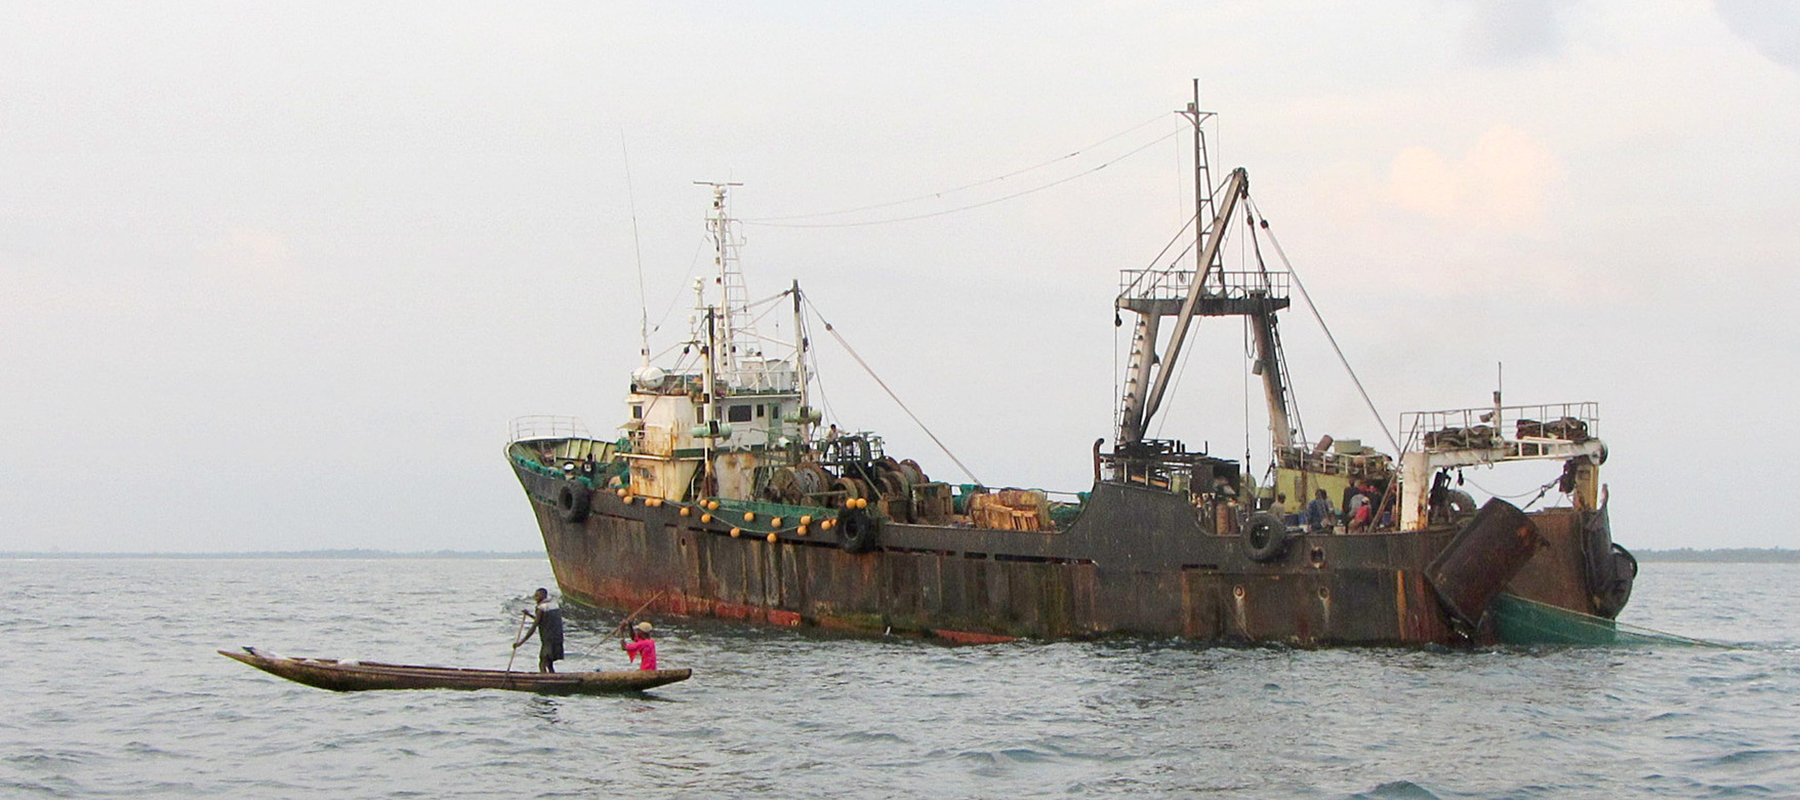 25 Reasons why the WTO must end subsidies that drive overfishing